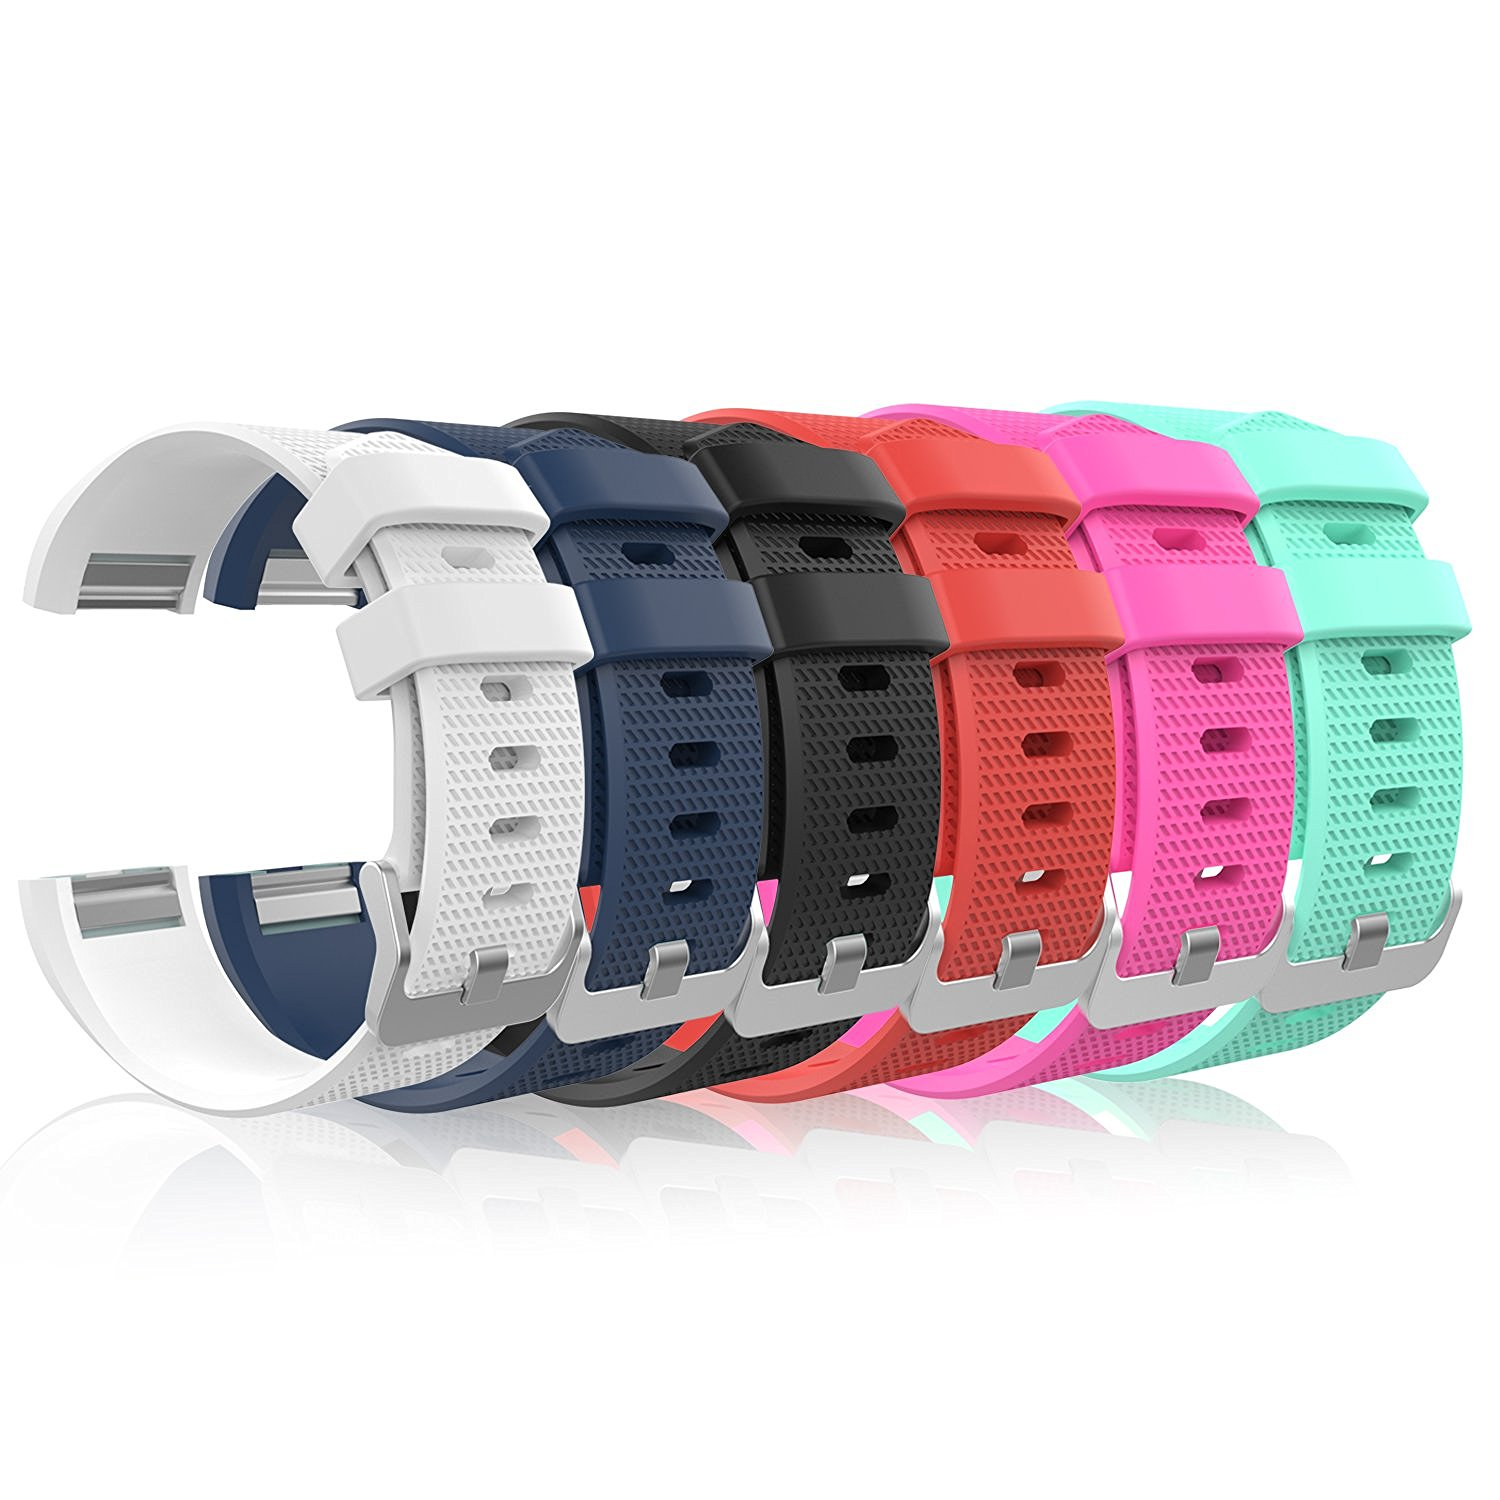 Soft silicone adjustable replacement sport strap band for fitbit